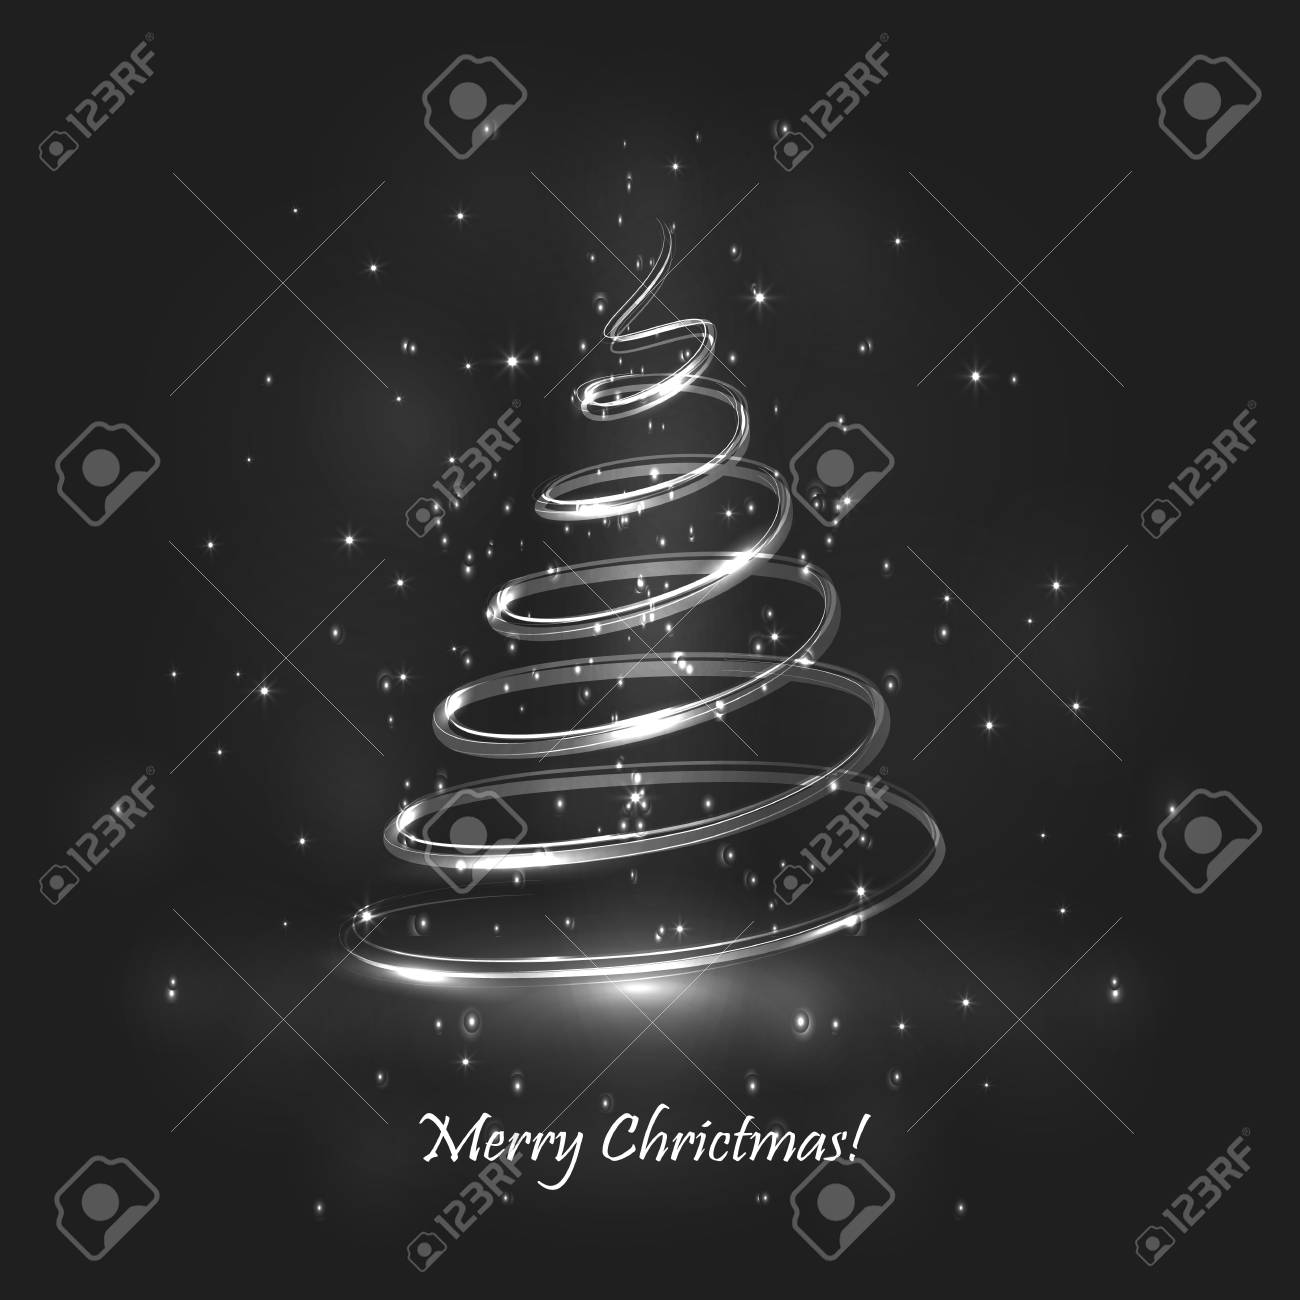 Magic Christmas Tree Grey Background Christmas Card Royalty Free